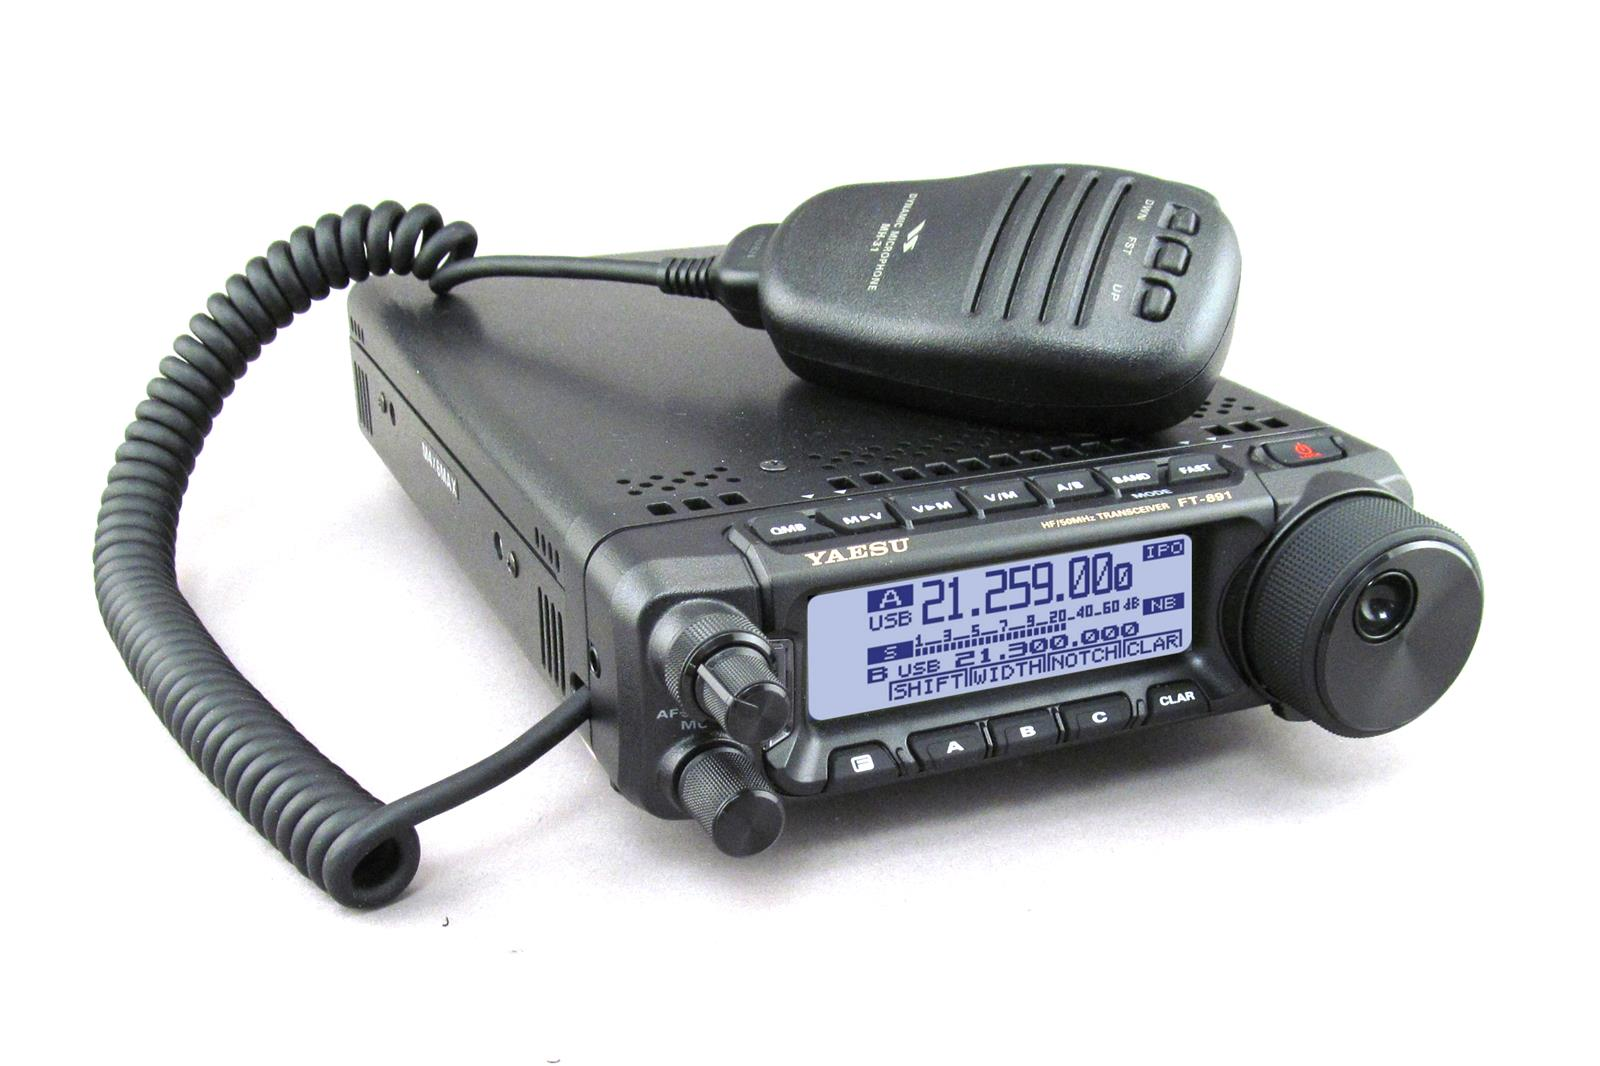 Yaesu FT-891 HF/50MHz All Mode Mobile Transceivers FT-891 - Free Shipping  on Most Orders Over $99 at DX Engineering